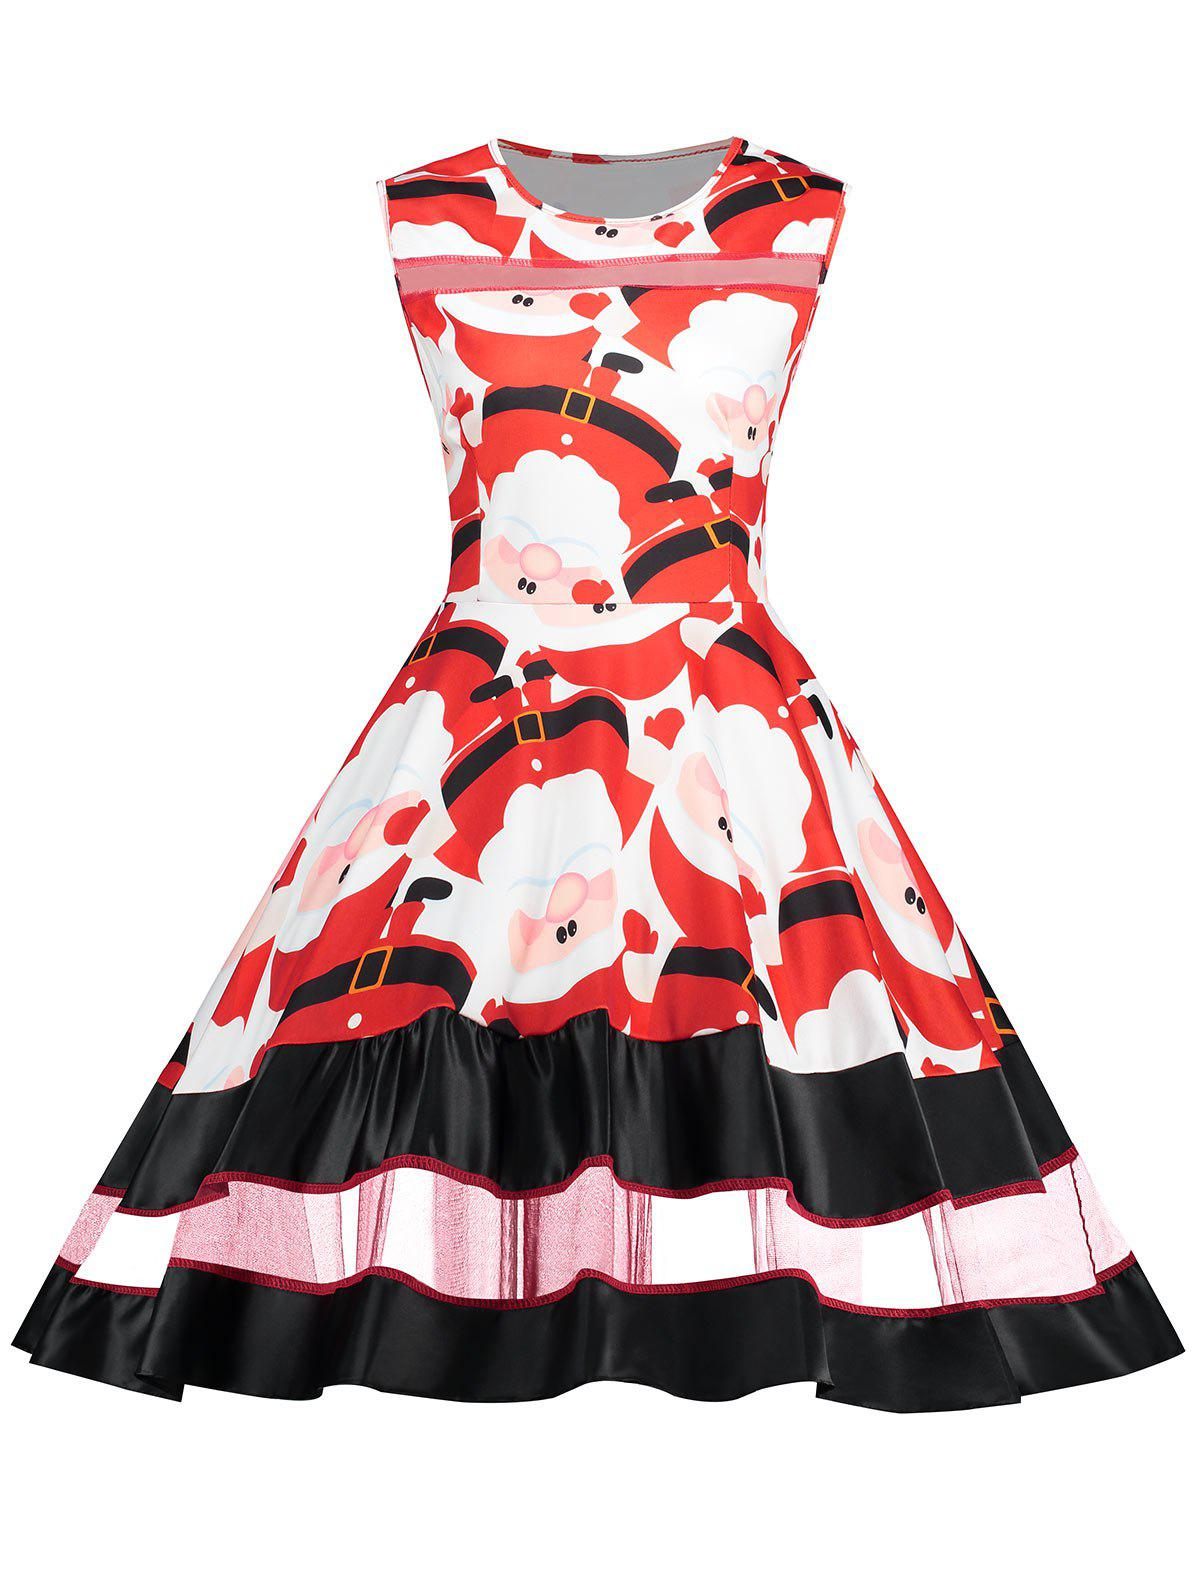 Mesh Panel Santa Claus Swing Party Dress music note party swing dress